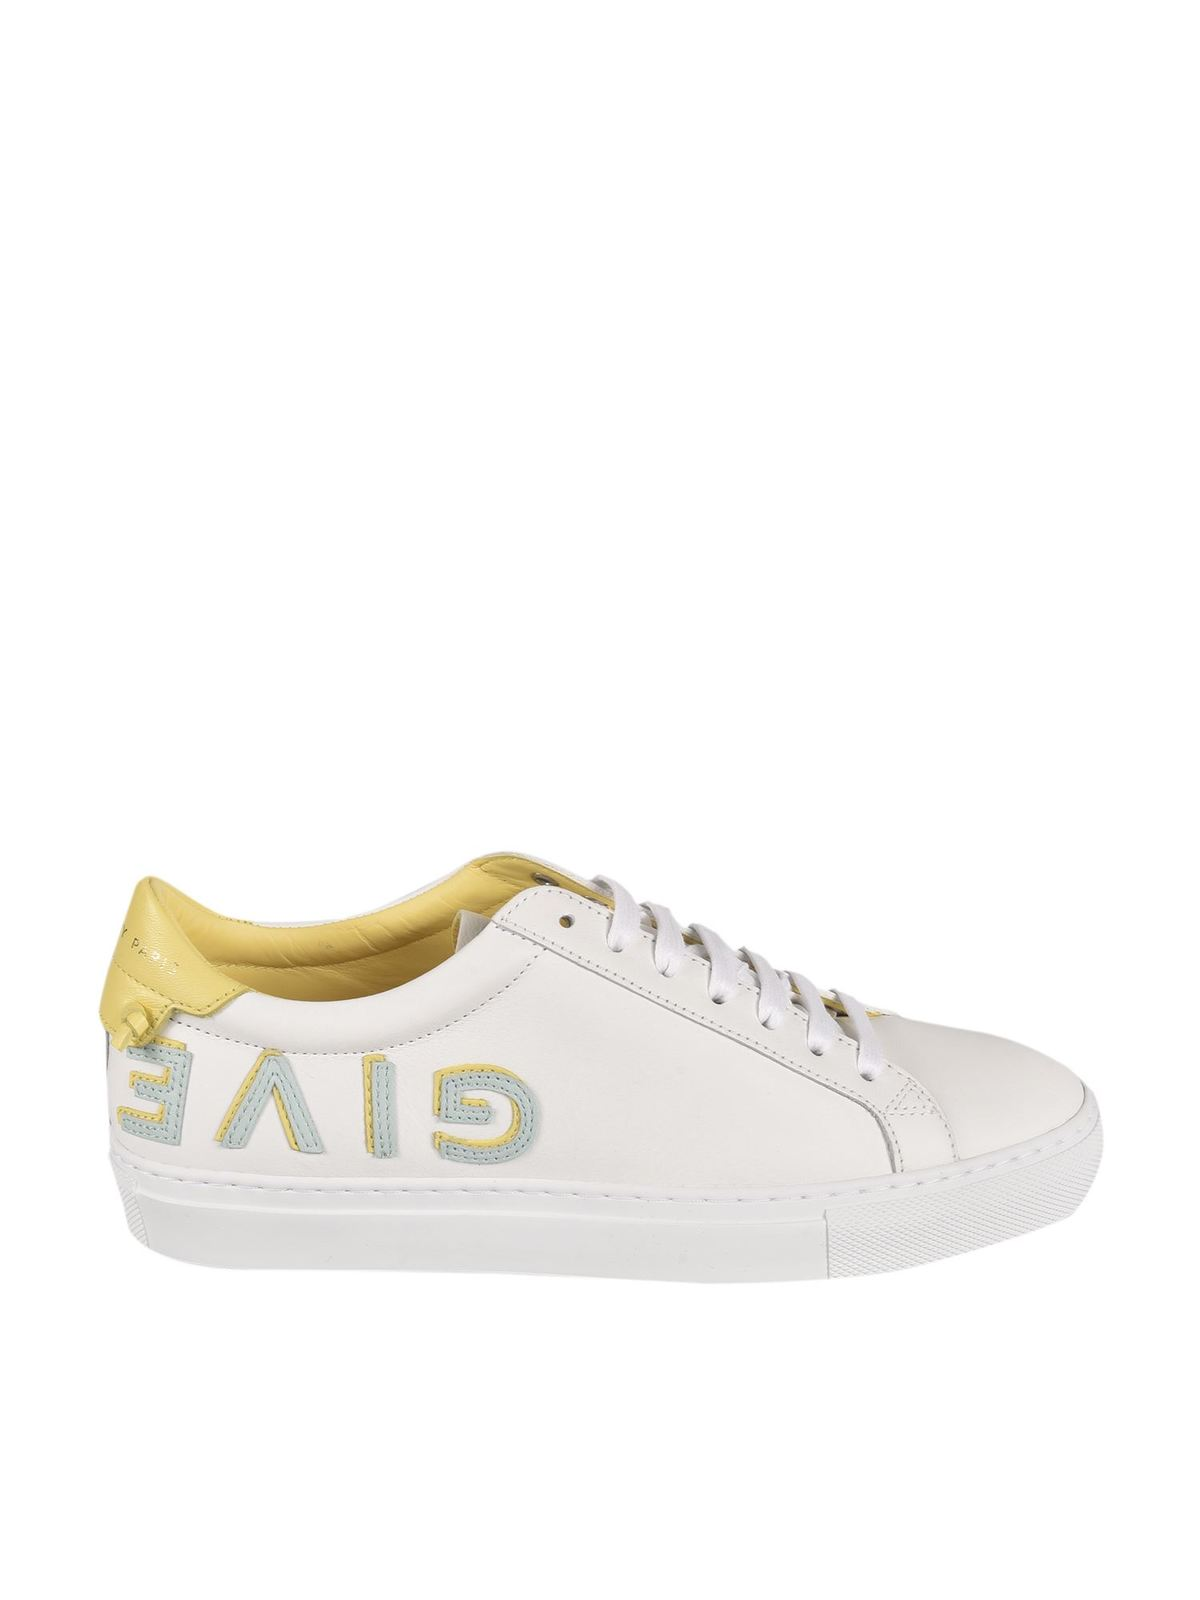 Givenchy Leathers URBAN STREET SNEAKERS IN WHITE AND YELLOW